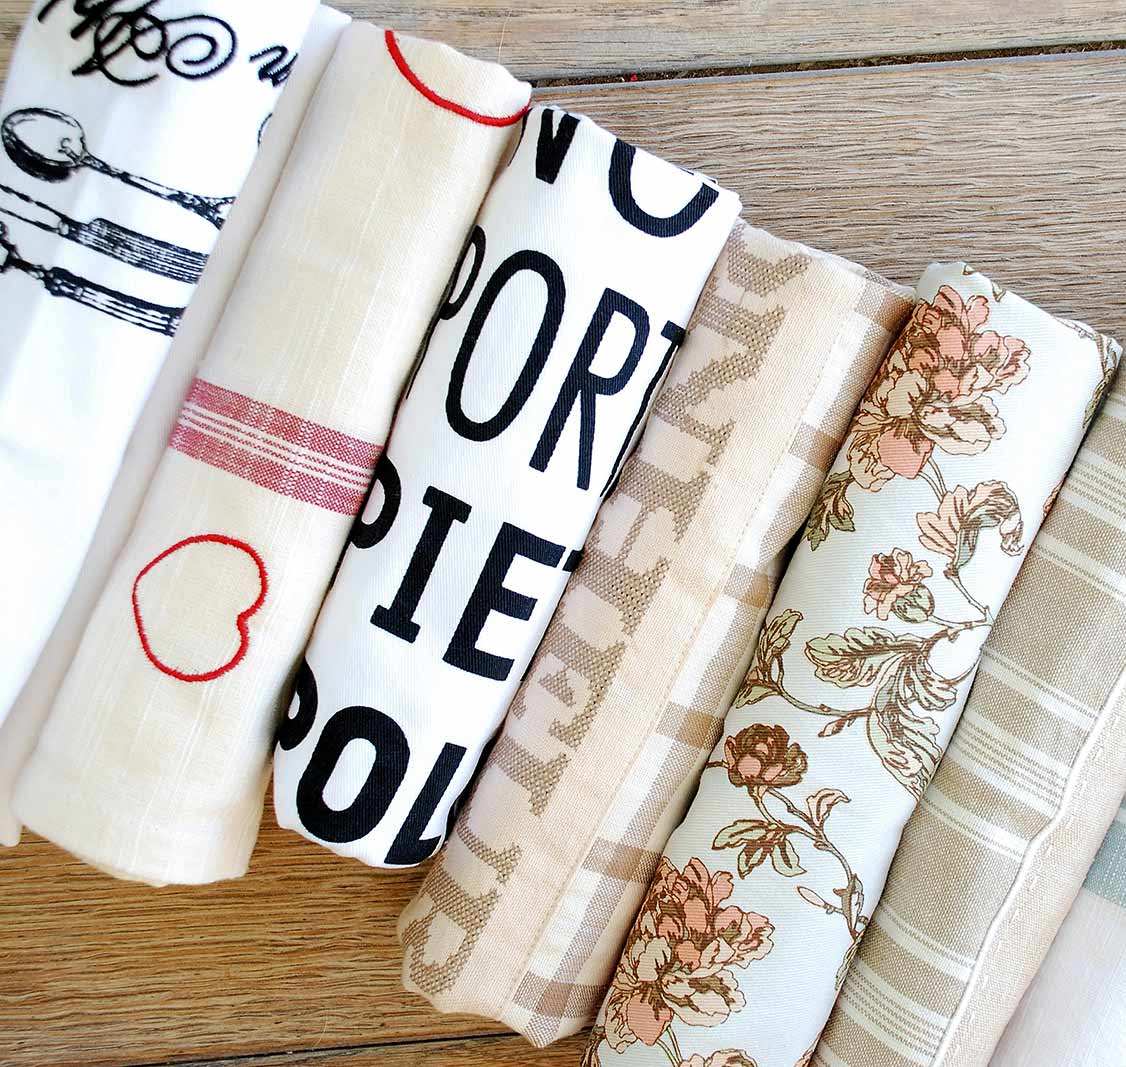 Rolled up tea towel